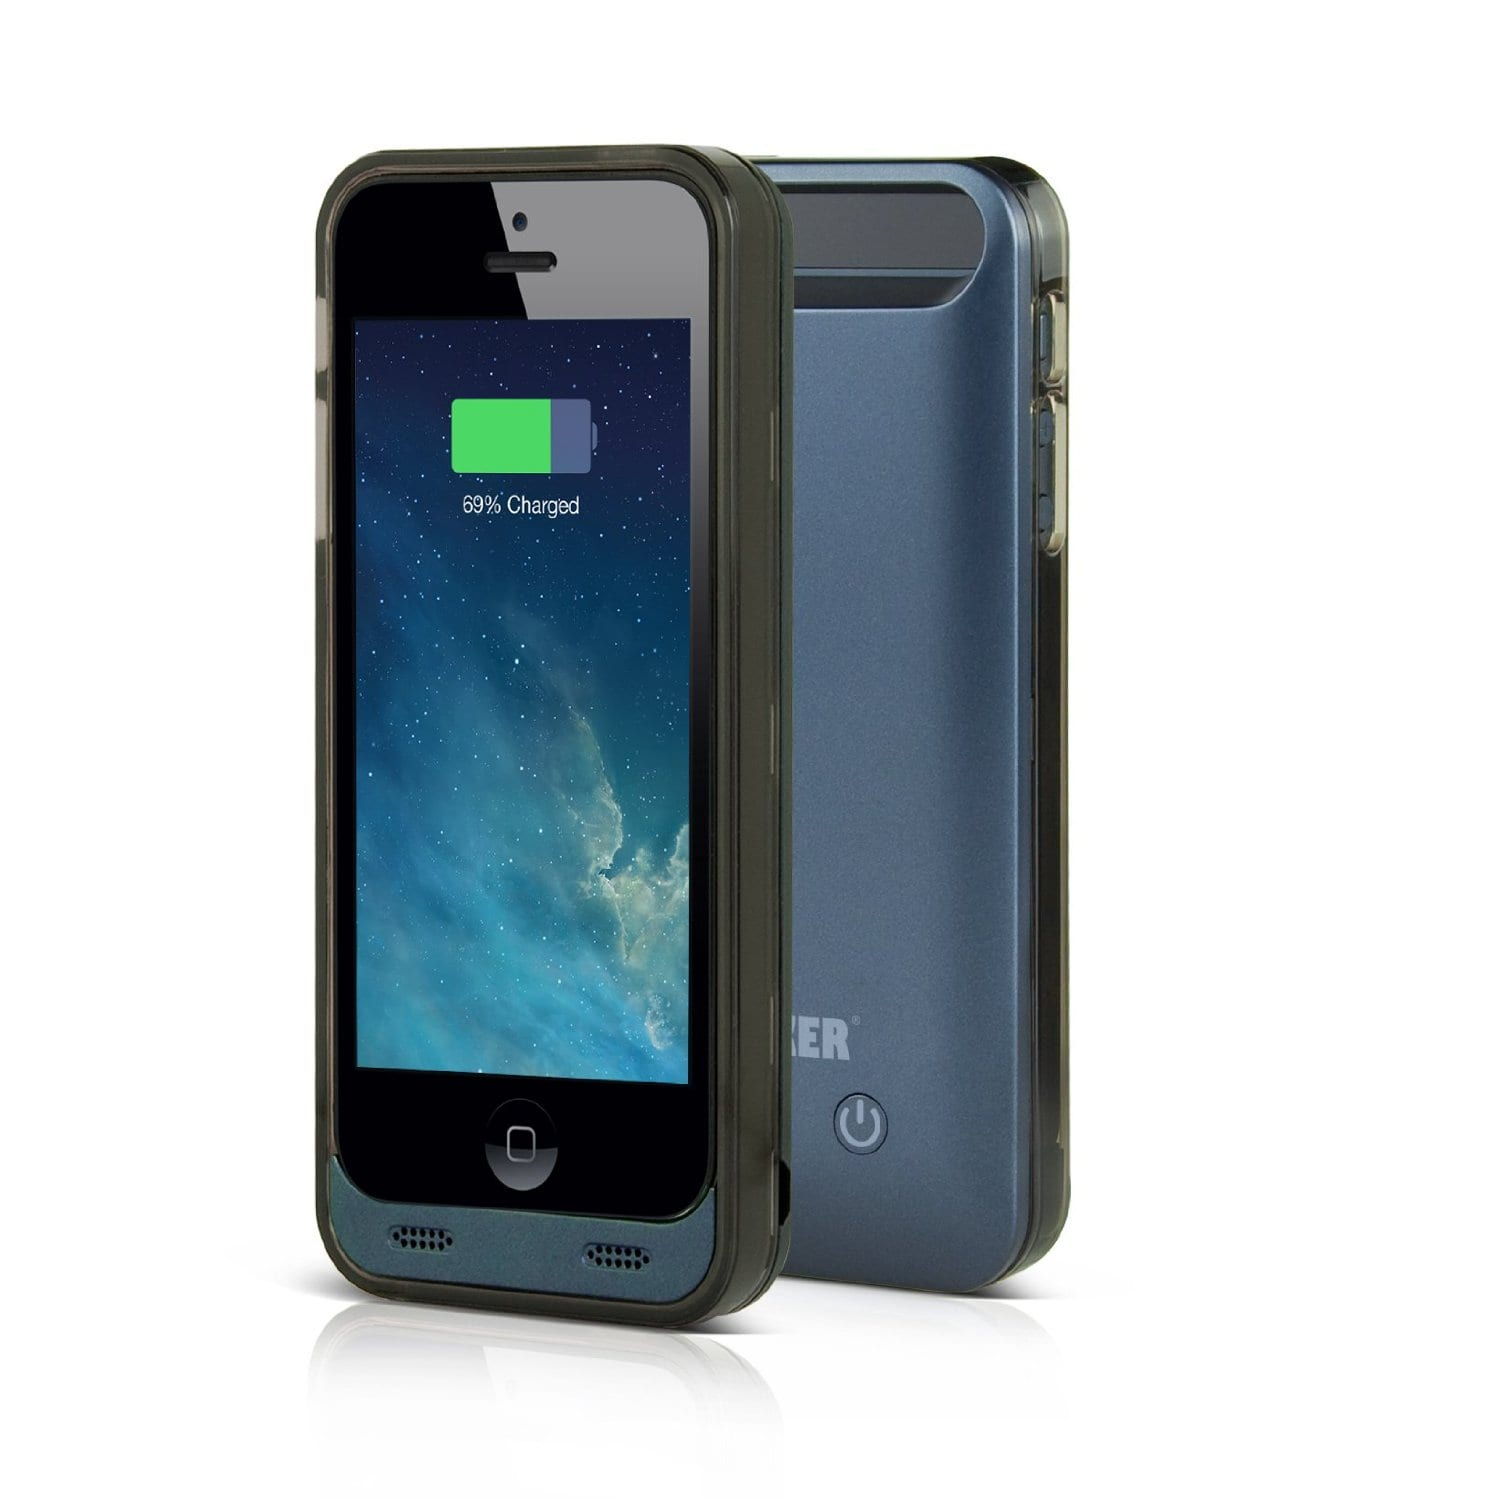 iSpazio-MR-Anker Battery Case-featured